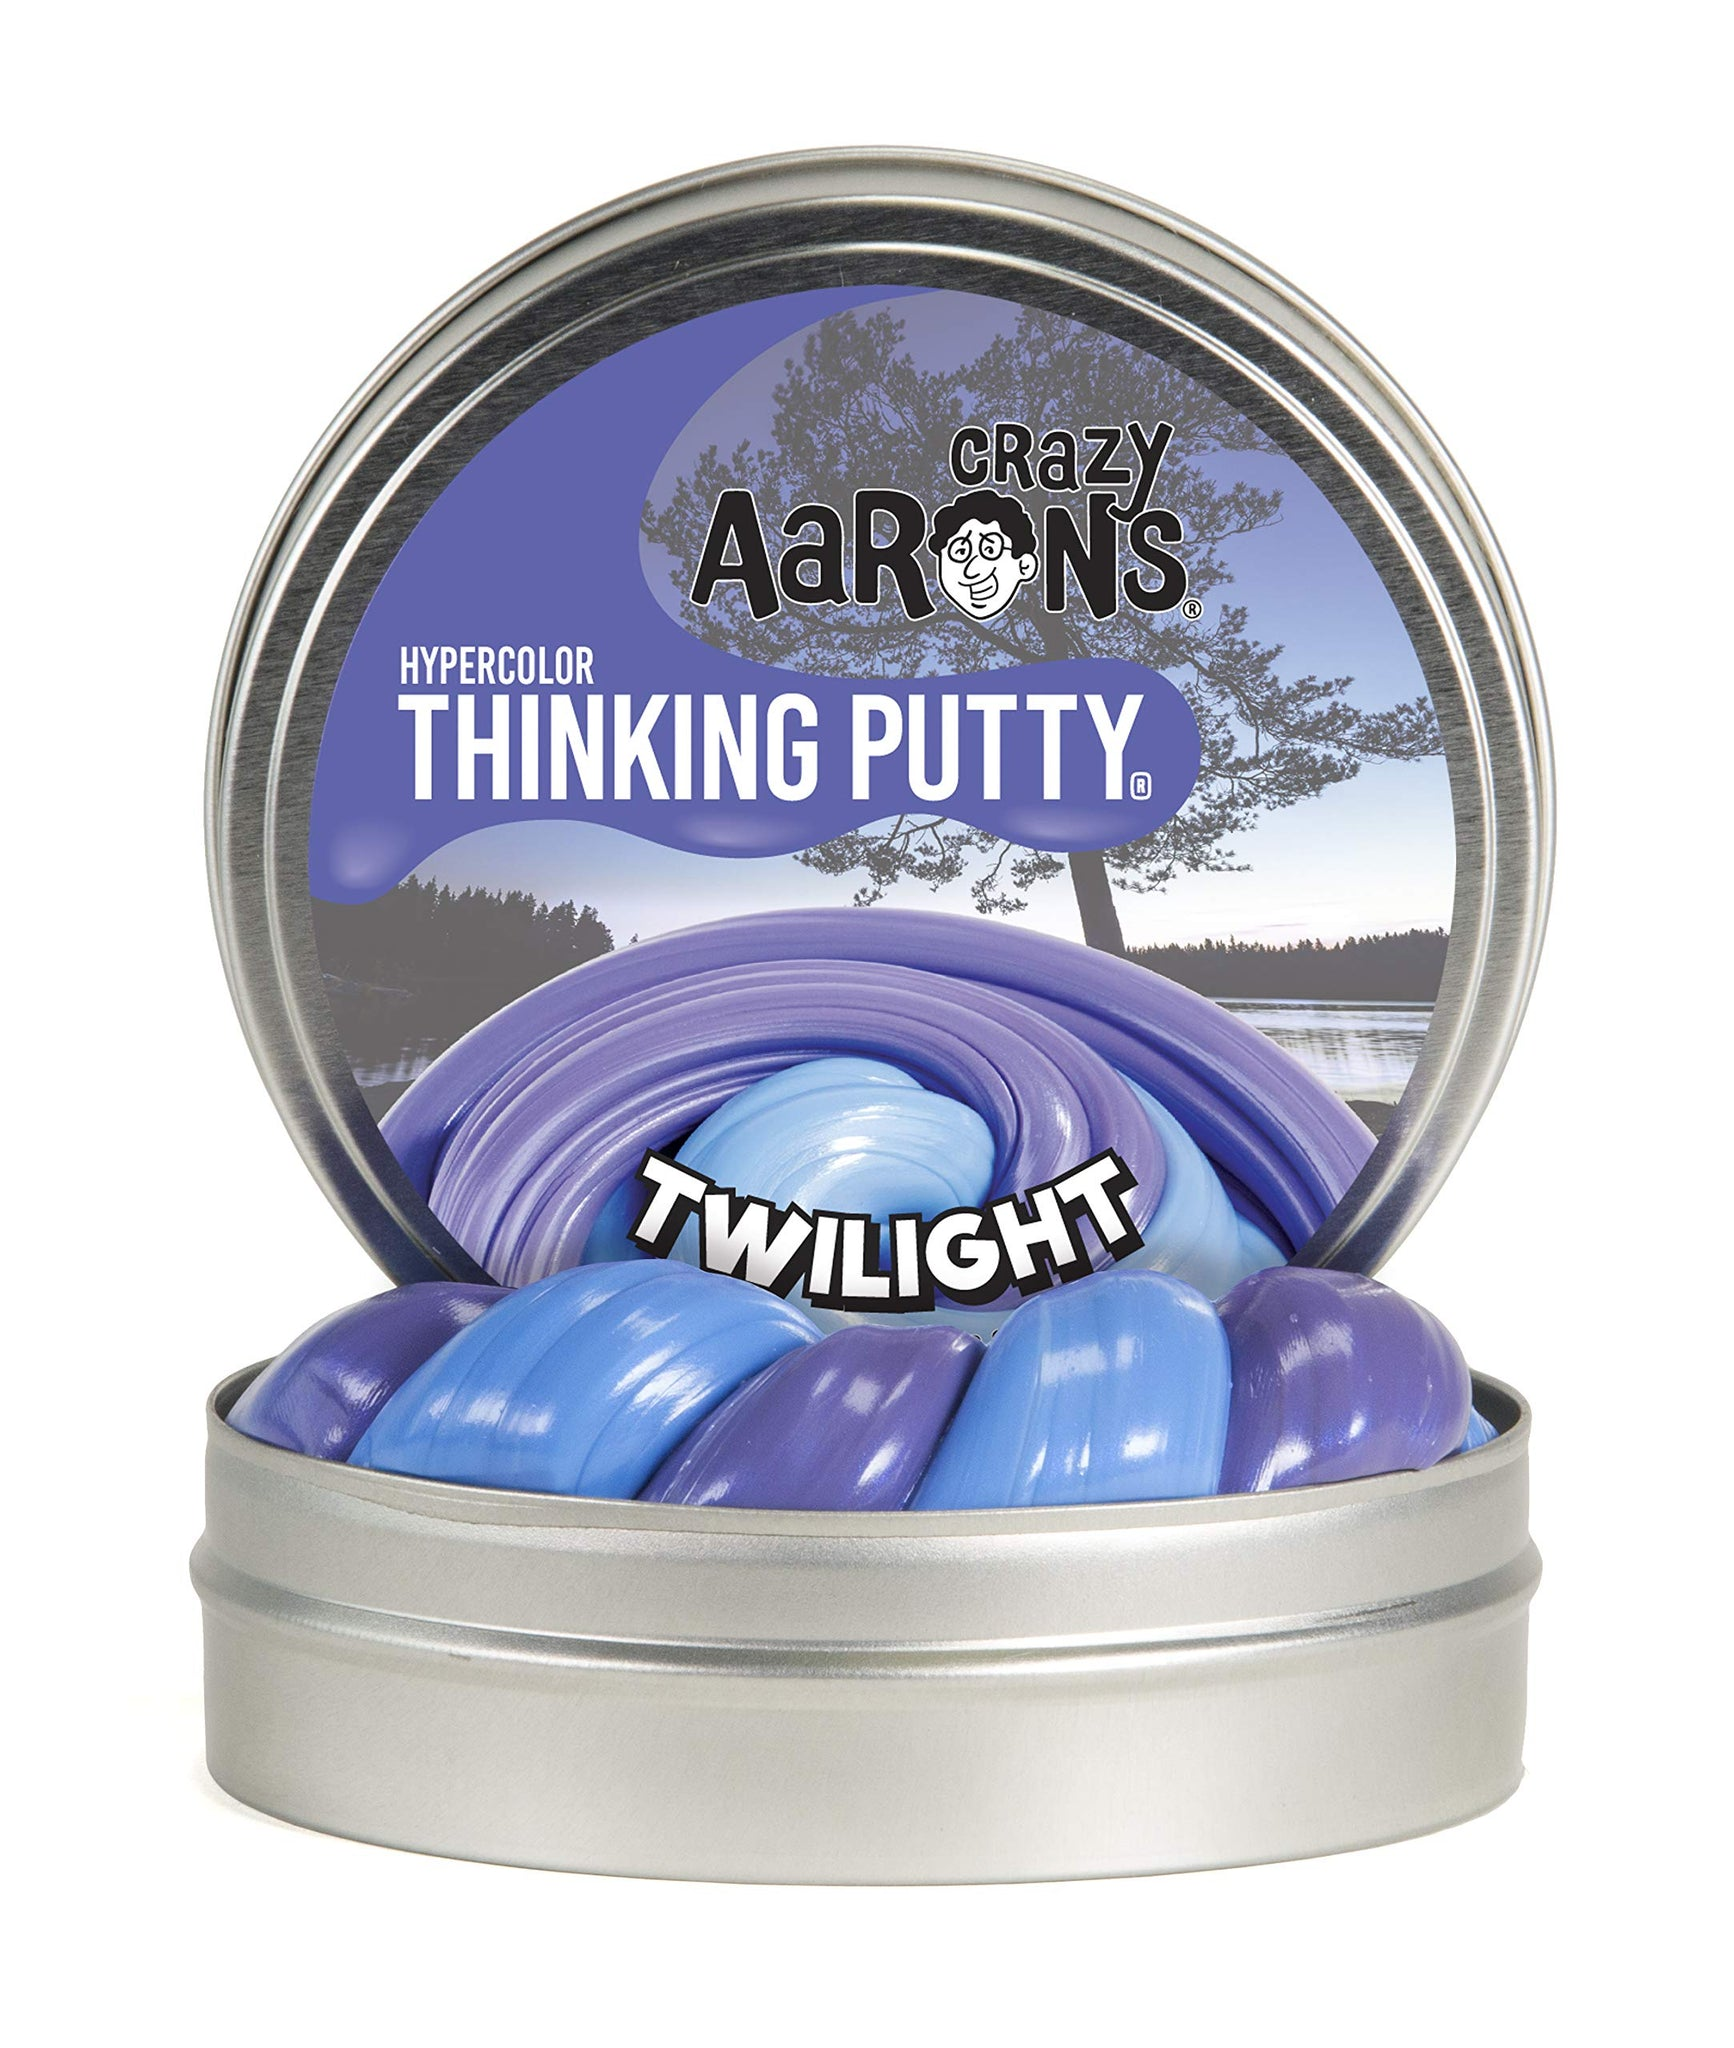 "Crazy Aaron's Thinking Putty 4"" Tin - Hypercolor Twilight - Color Changing Putty, Firm Texture - Never Dries Out"